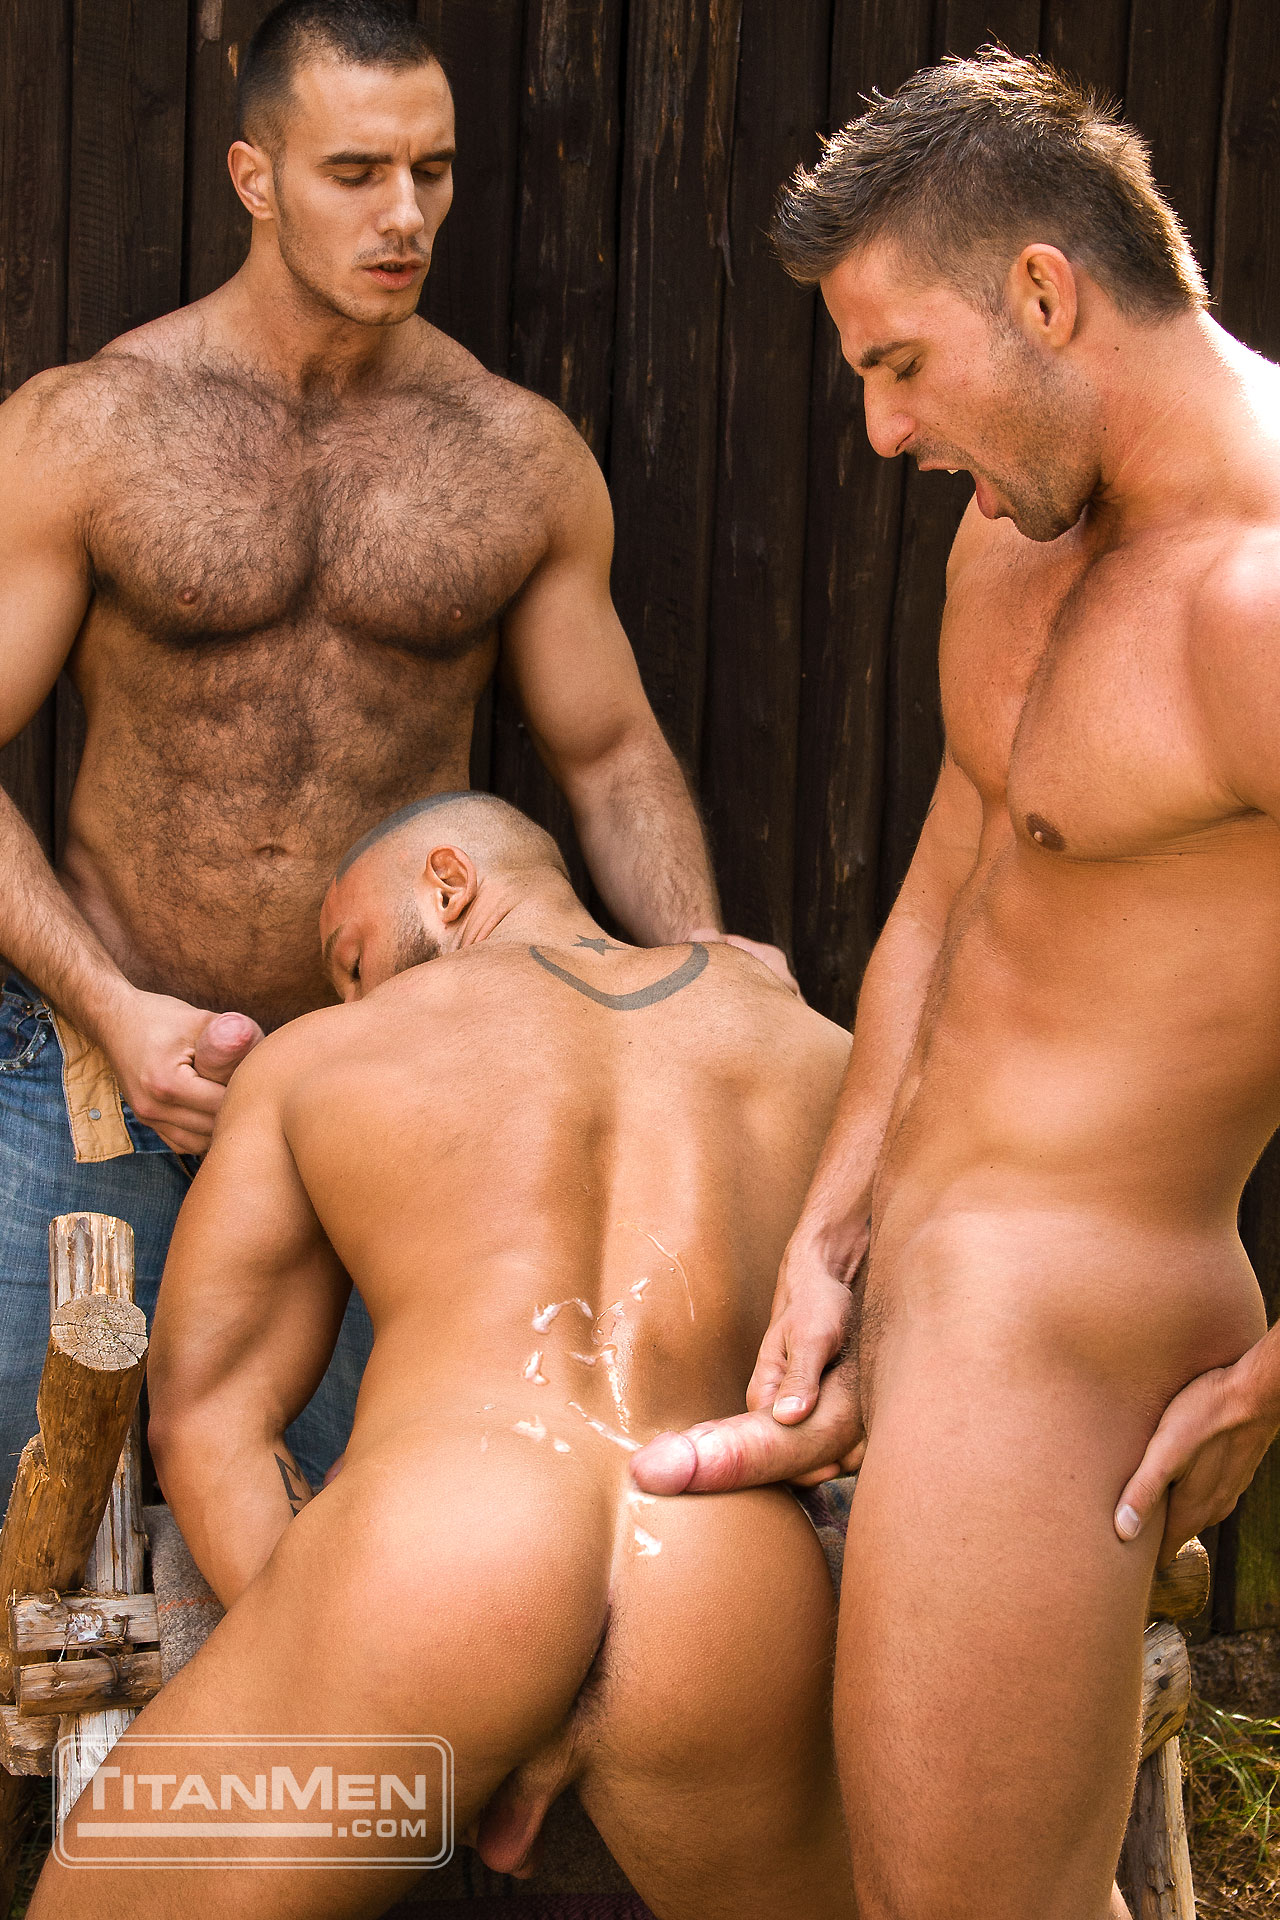 from Marley black naked men cuming